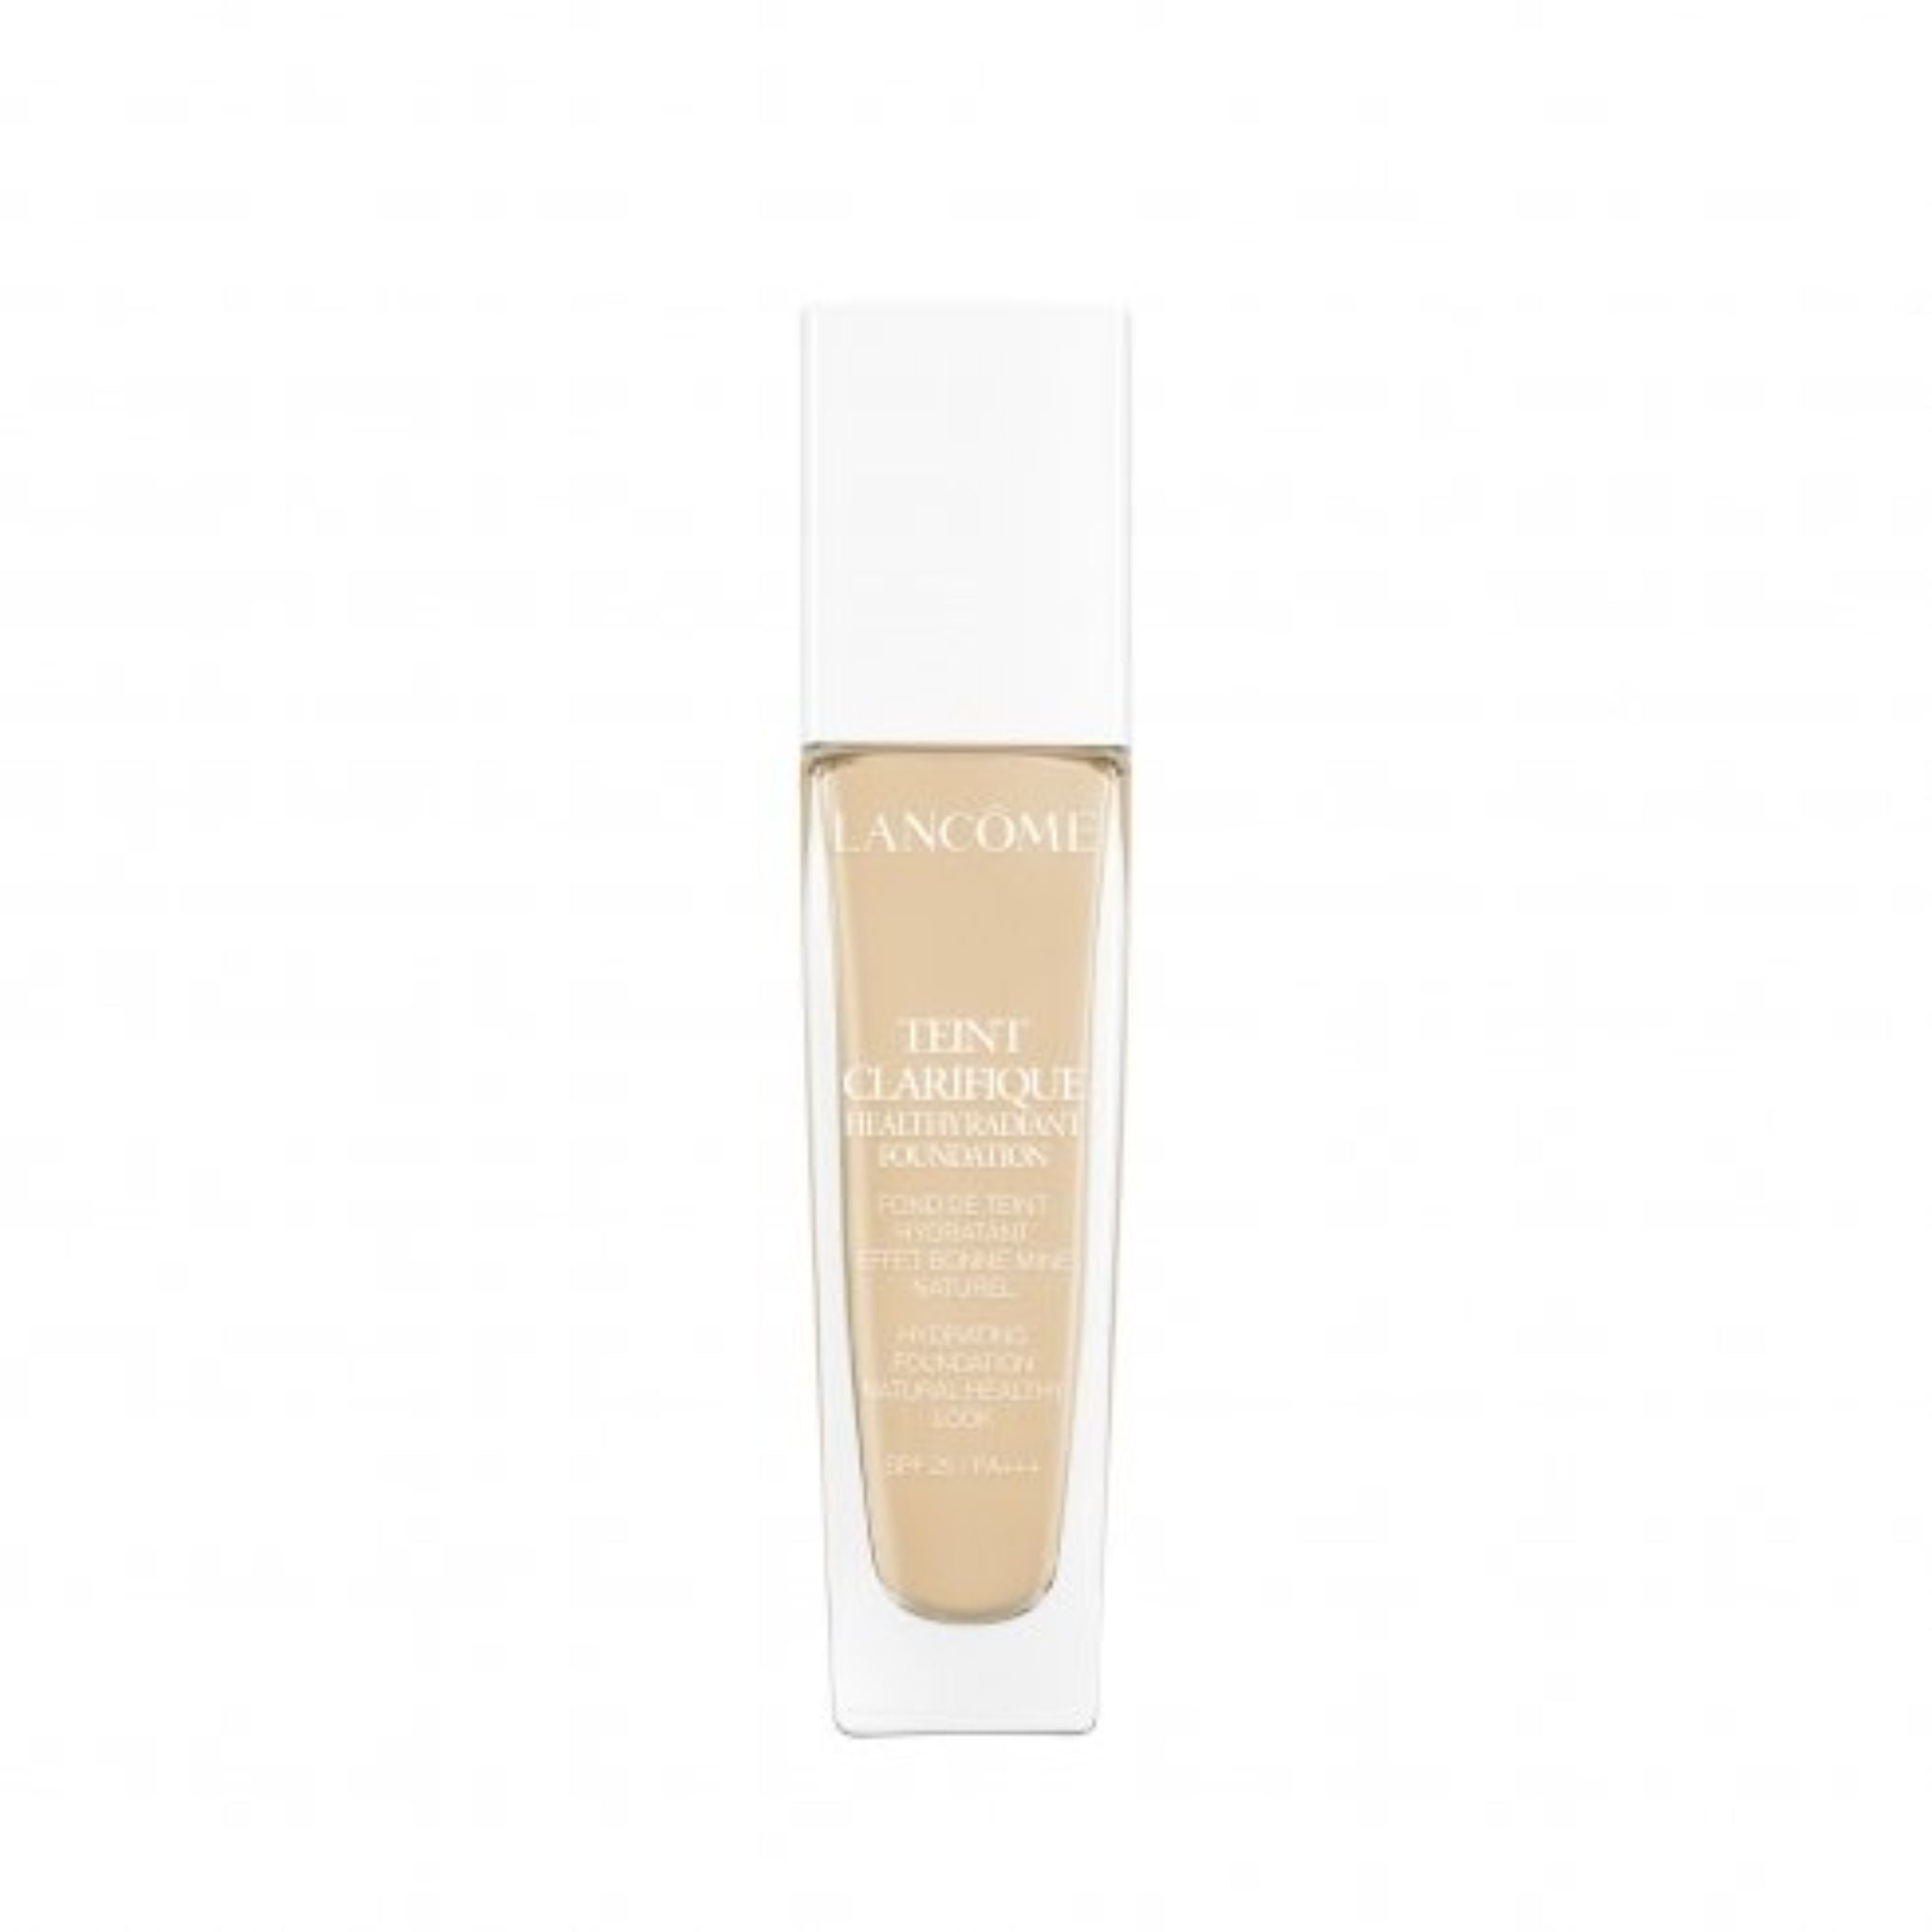 Lancome Teint Clarifique Hydrating Foundation P-00